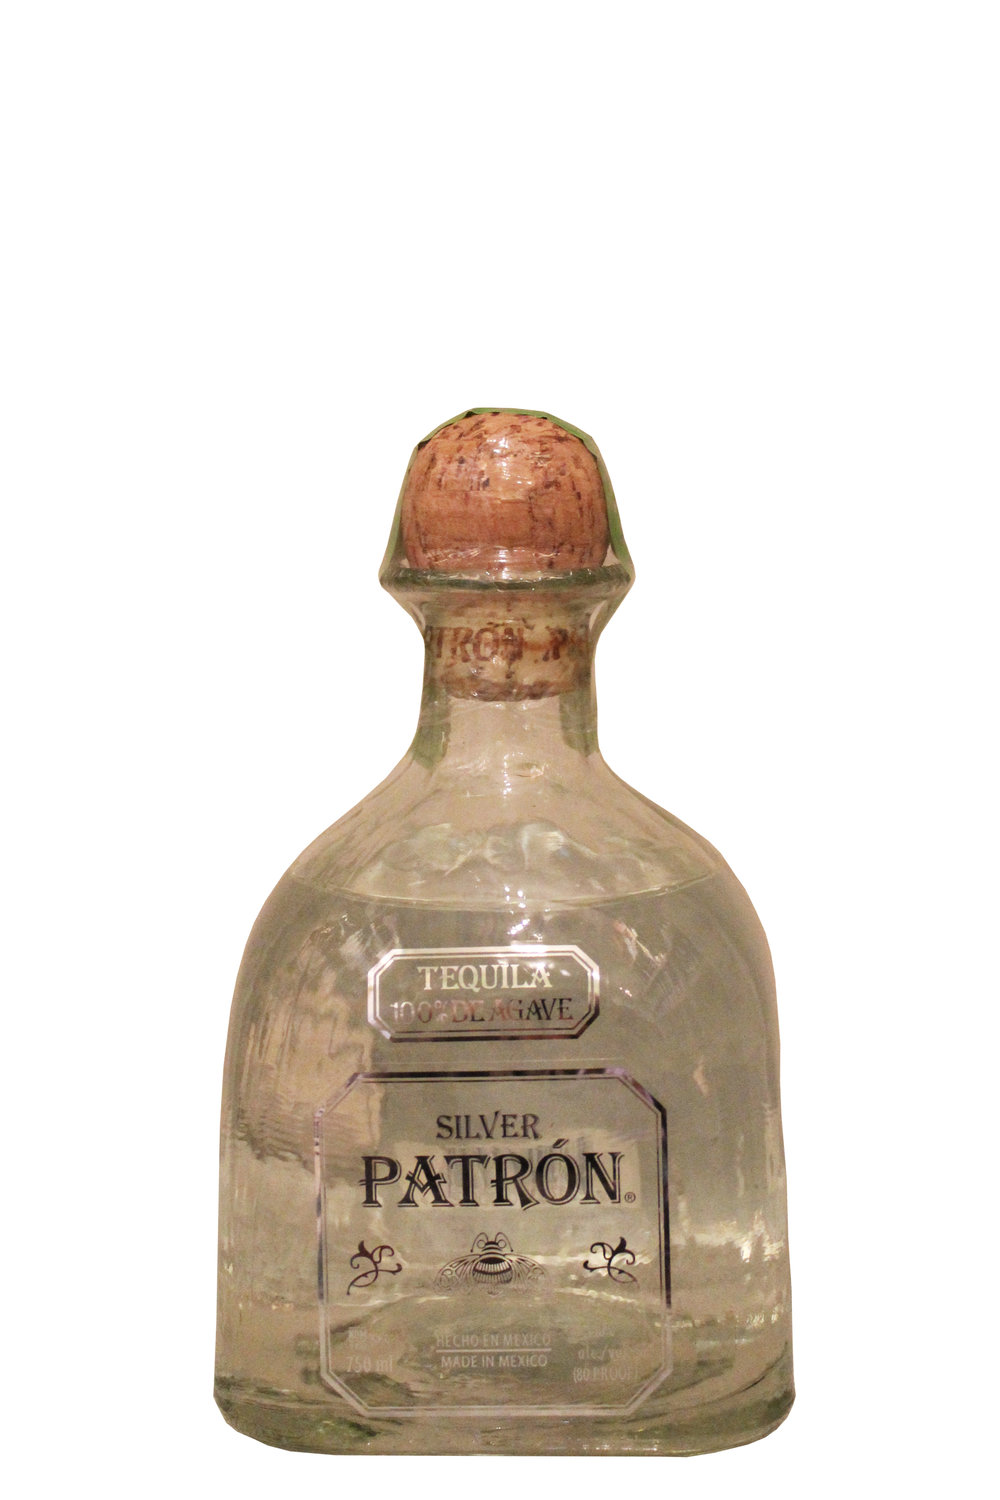 Traditional Silver Tequila  Patron,  Mexico